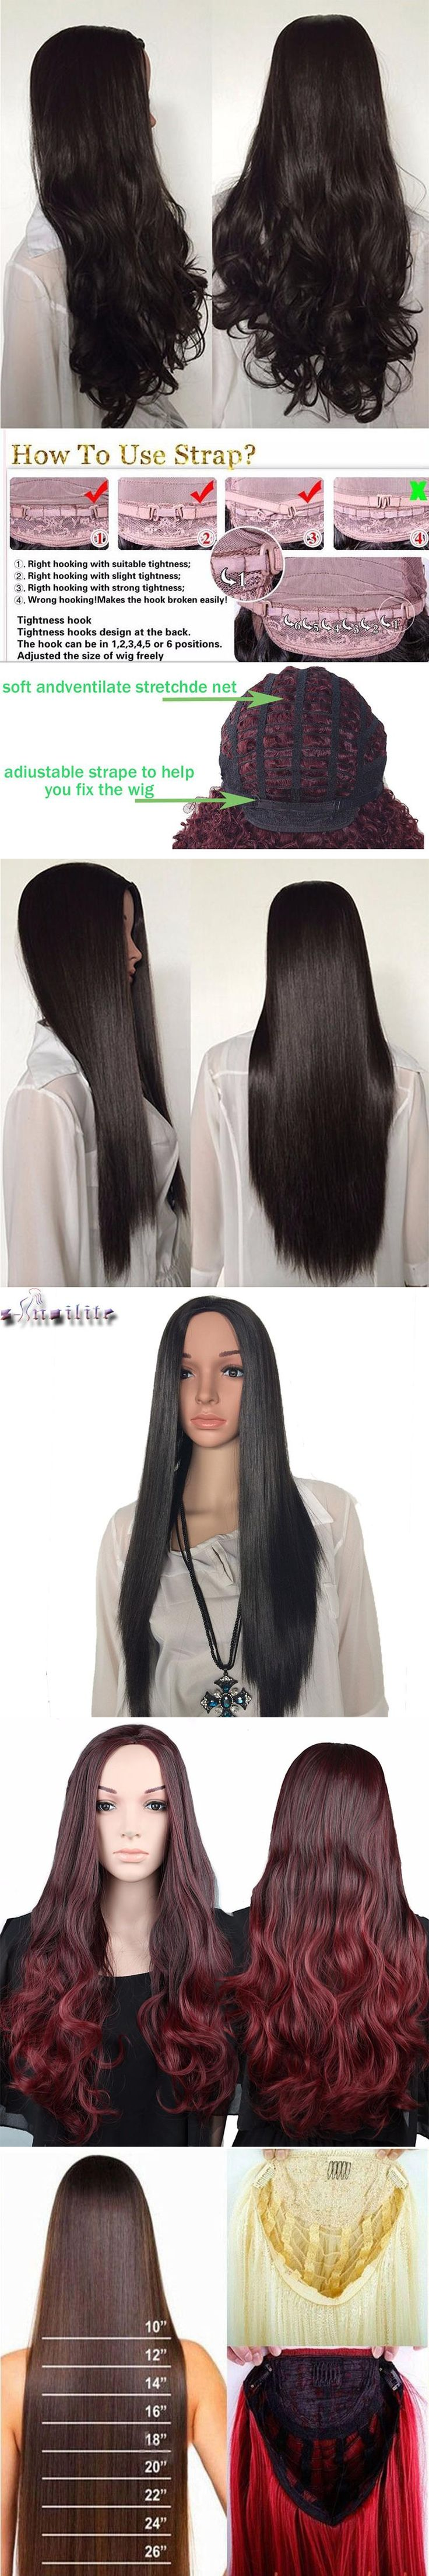 """S-noilite Long 28"""" Half Wigs 300g Natural Straight Synthetic Half Wigs For Women Natural Hairpieces Heat Resistant Hair"""